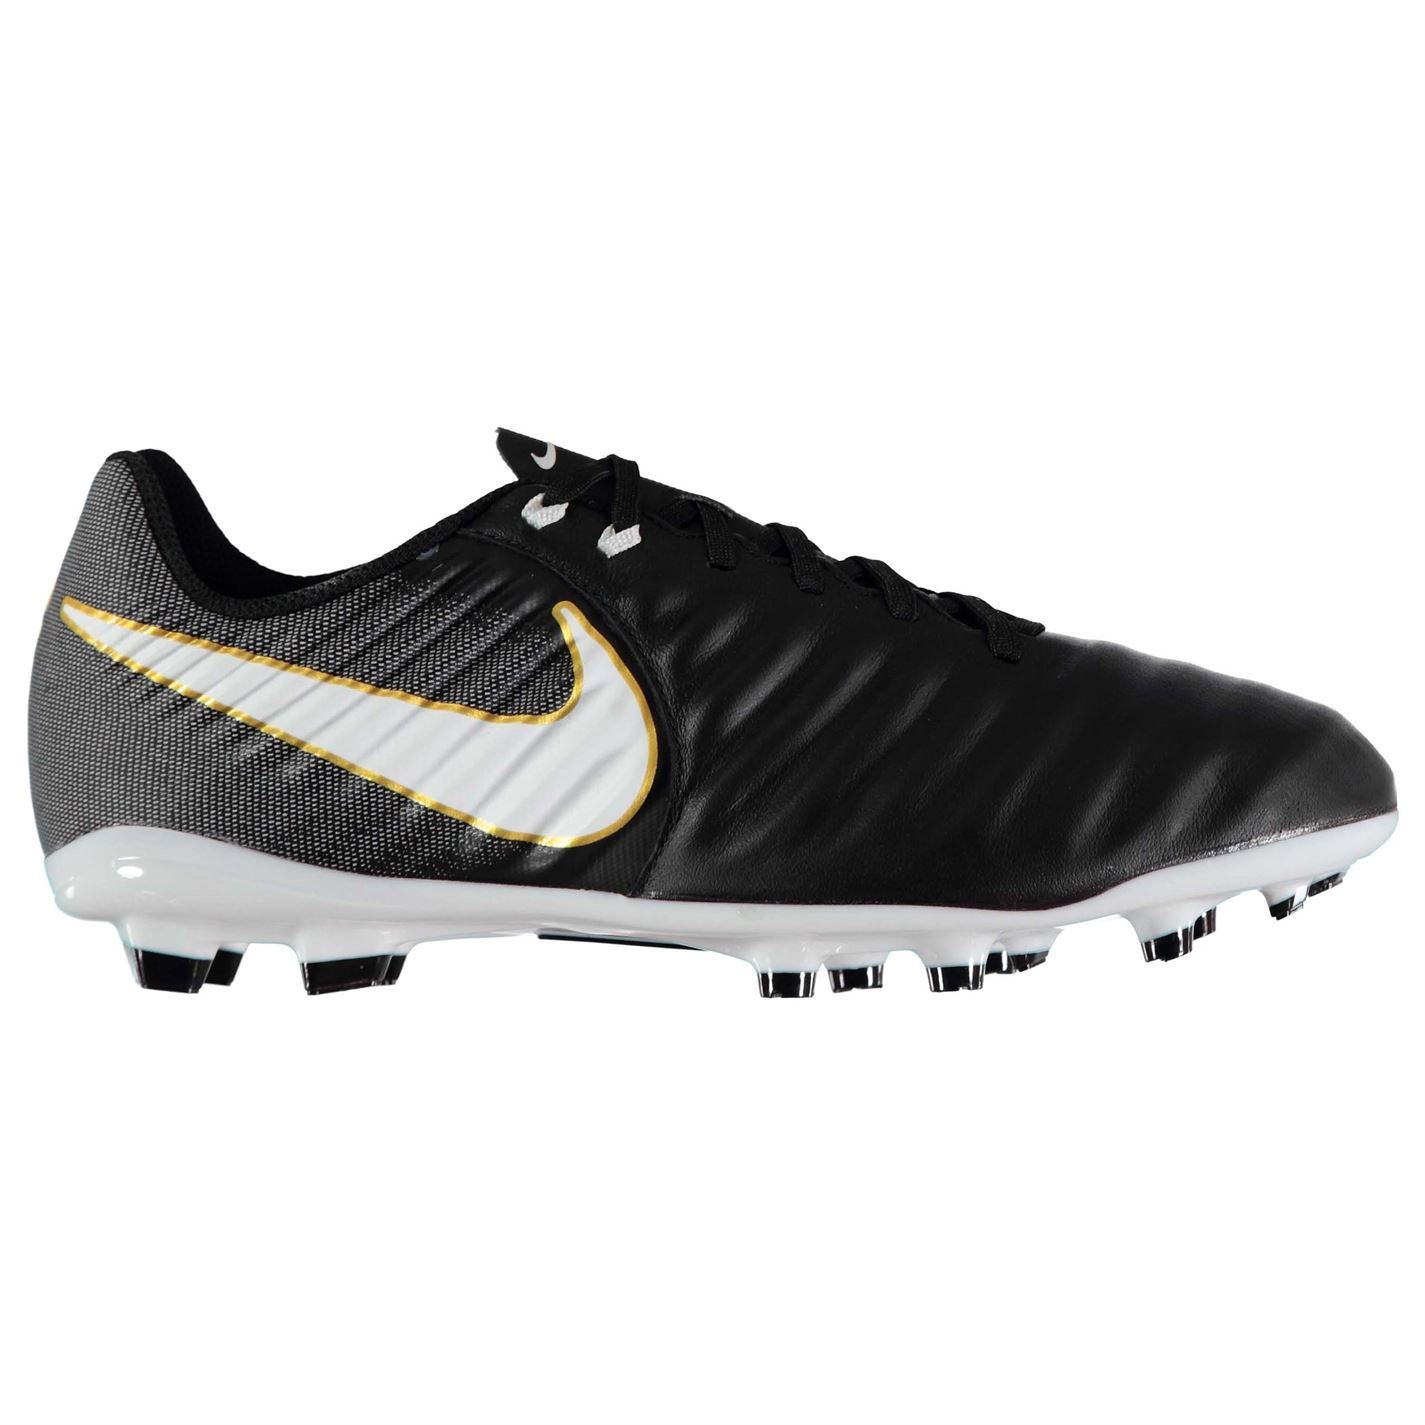 49007c50d46 ... Nike Tiempo Ligera Firm Ground Football Boots Juniors Black White Soccer  Cleats ...